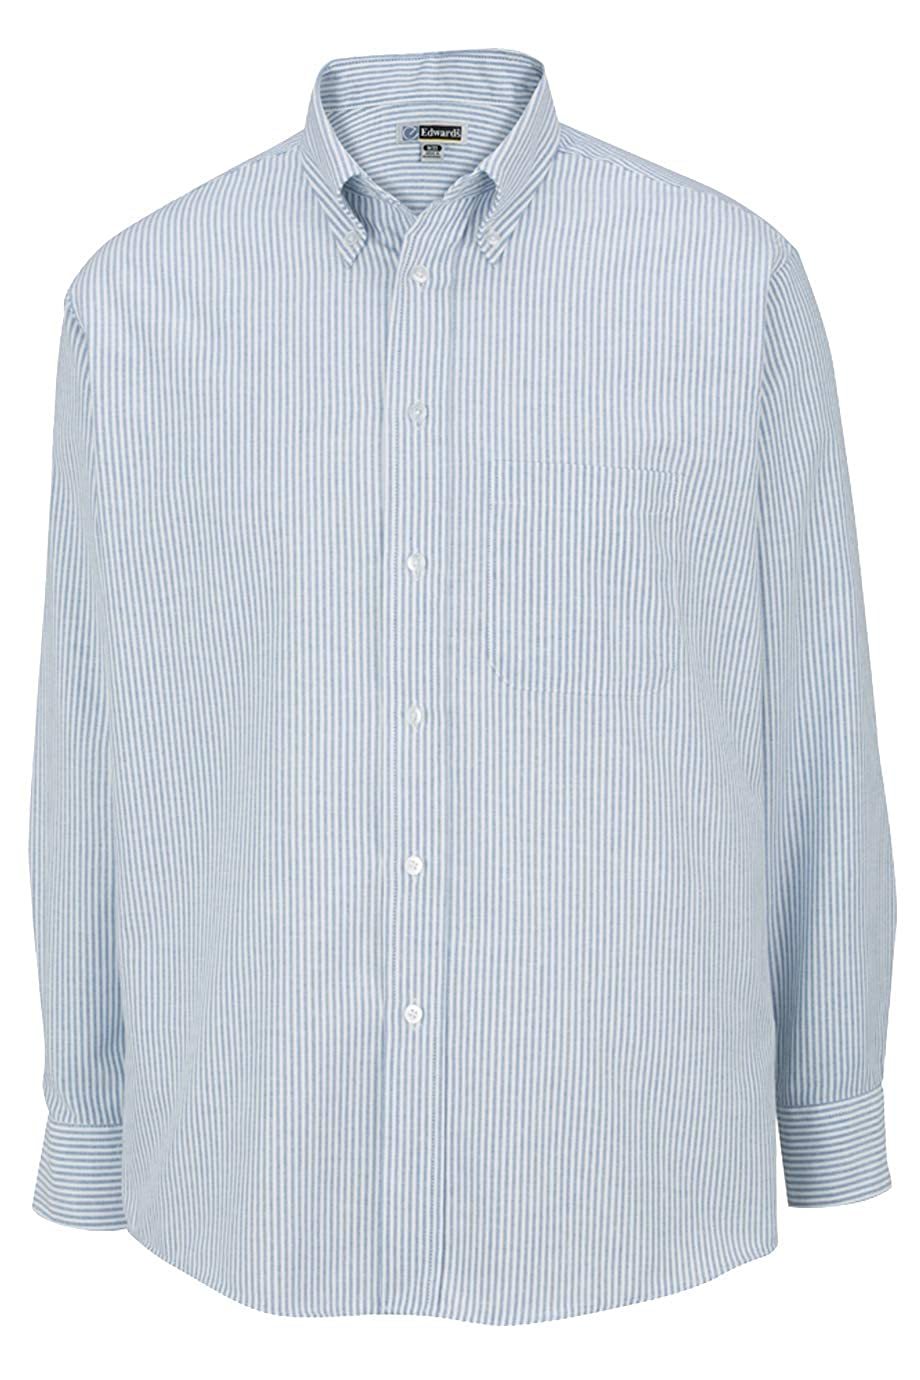 Edwards Mens Long Sleeve Oxford Shirt